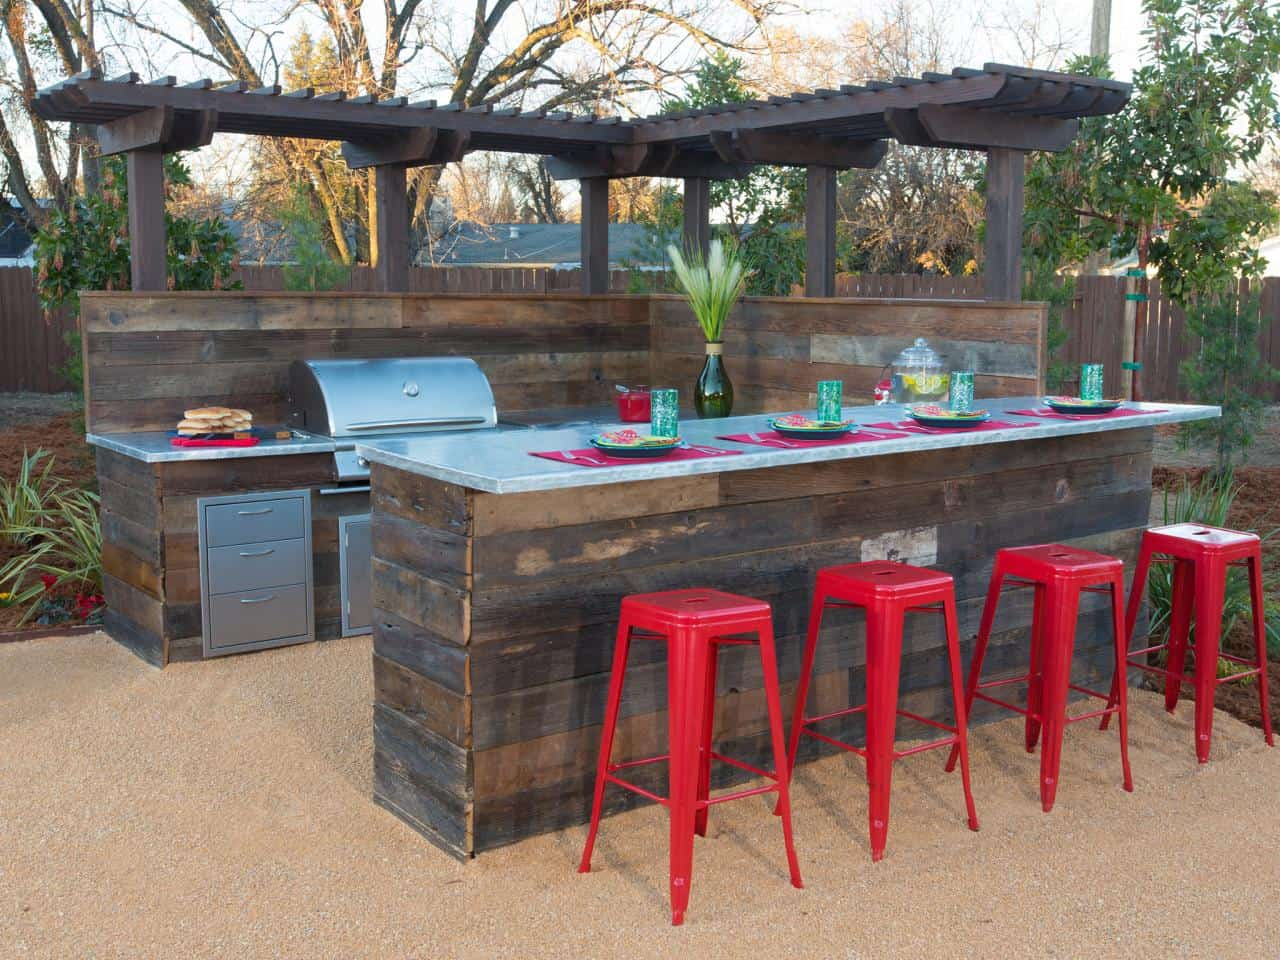 Charmant 20 Modern Outdoor Bar Ideas To Entertain With!